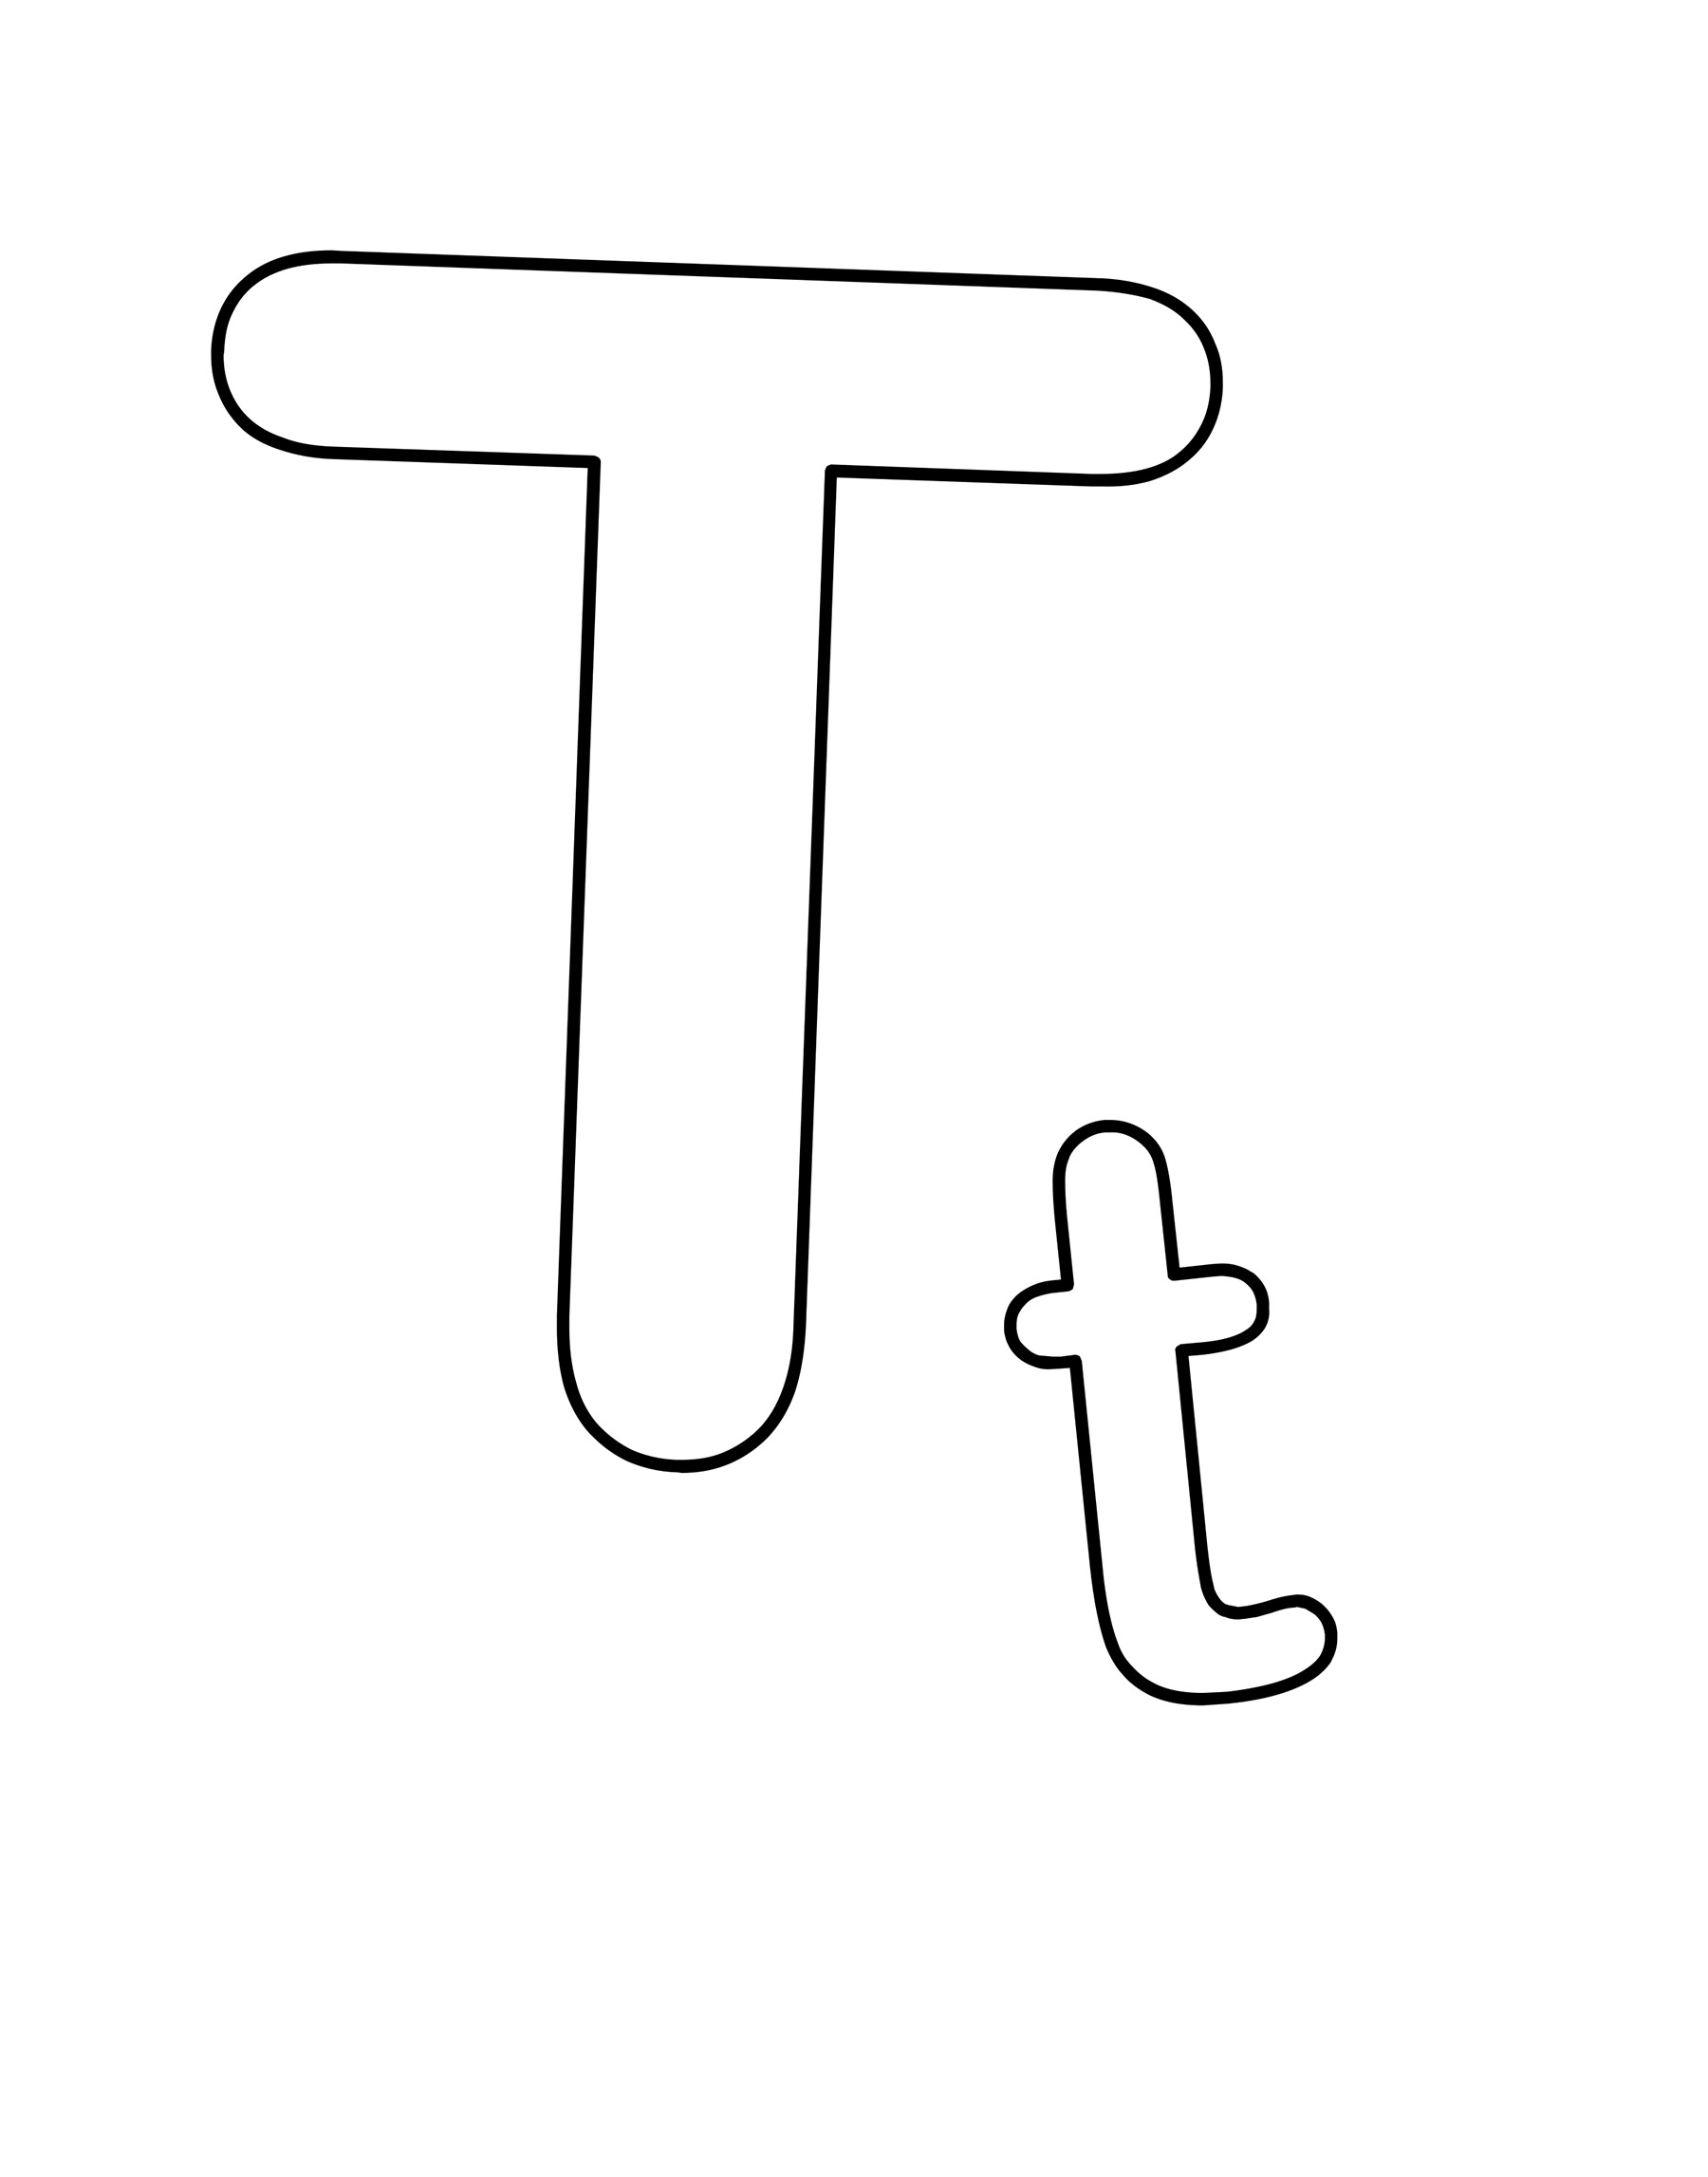 coloring letter t worksheets free printables letter t coloring pages to download and print for free letter free worksheets coloring printables t